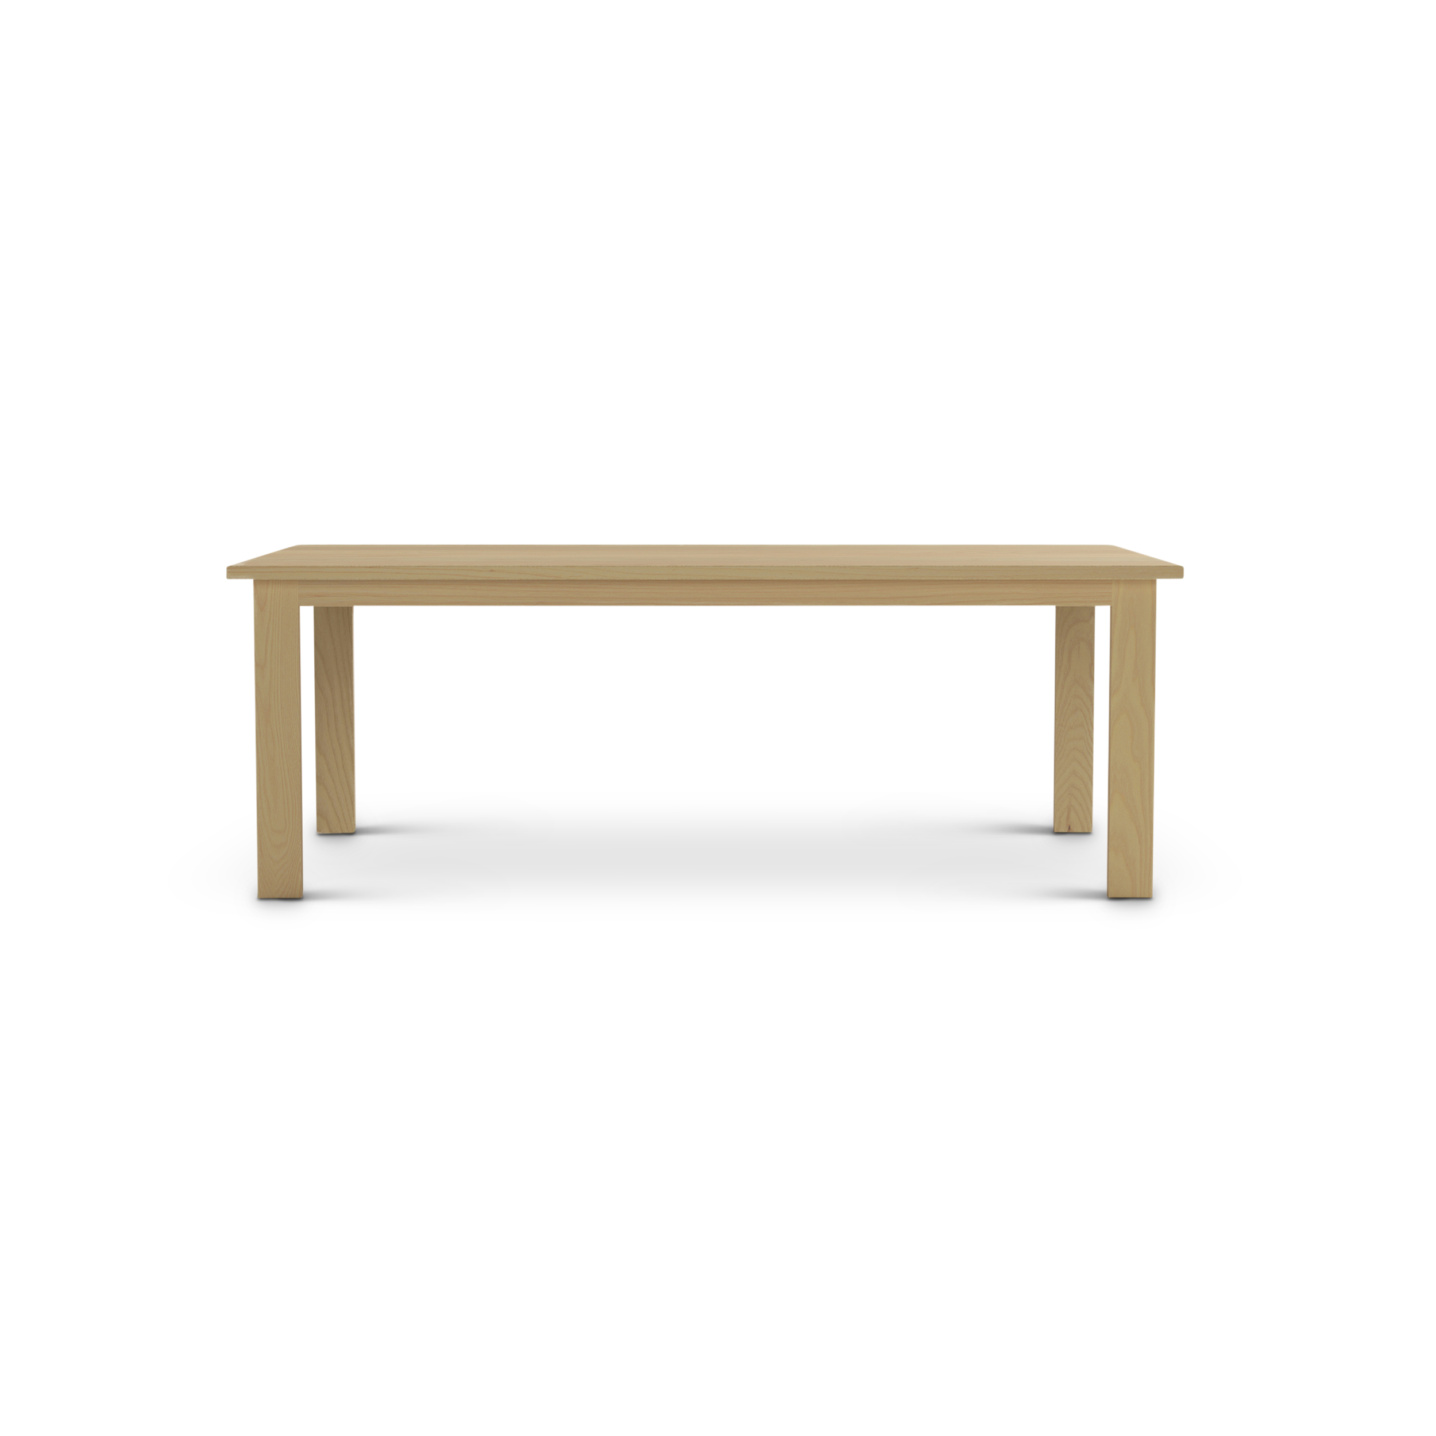 Modern Ash Dining Room Nordic Table